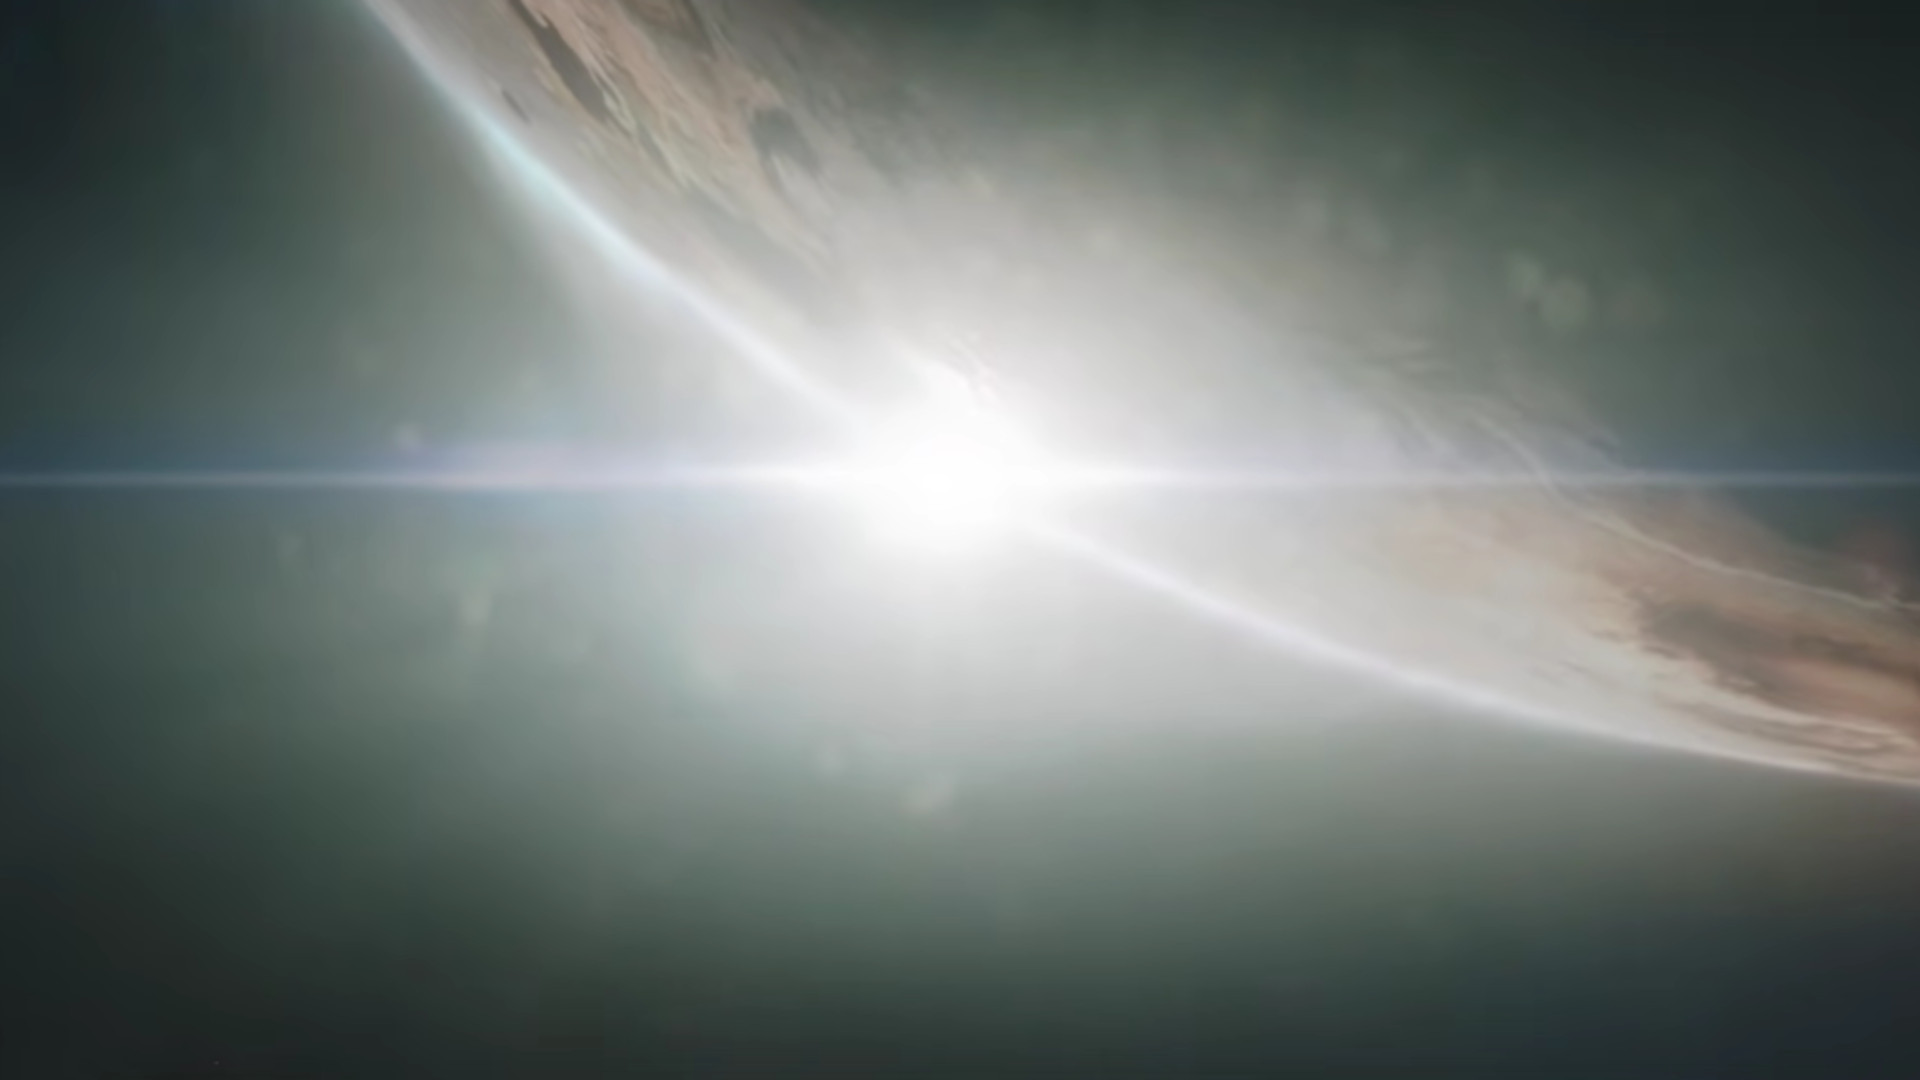 Starfield launches 11 years to the day after Skyrim